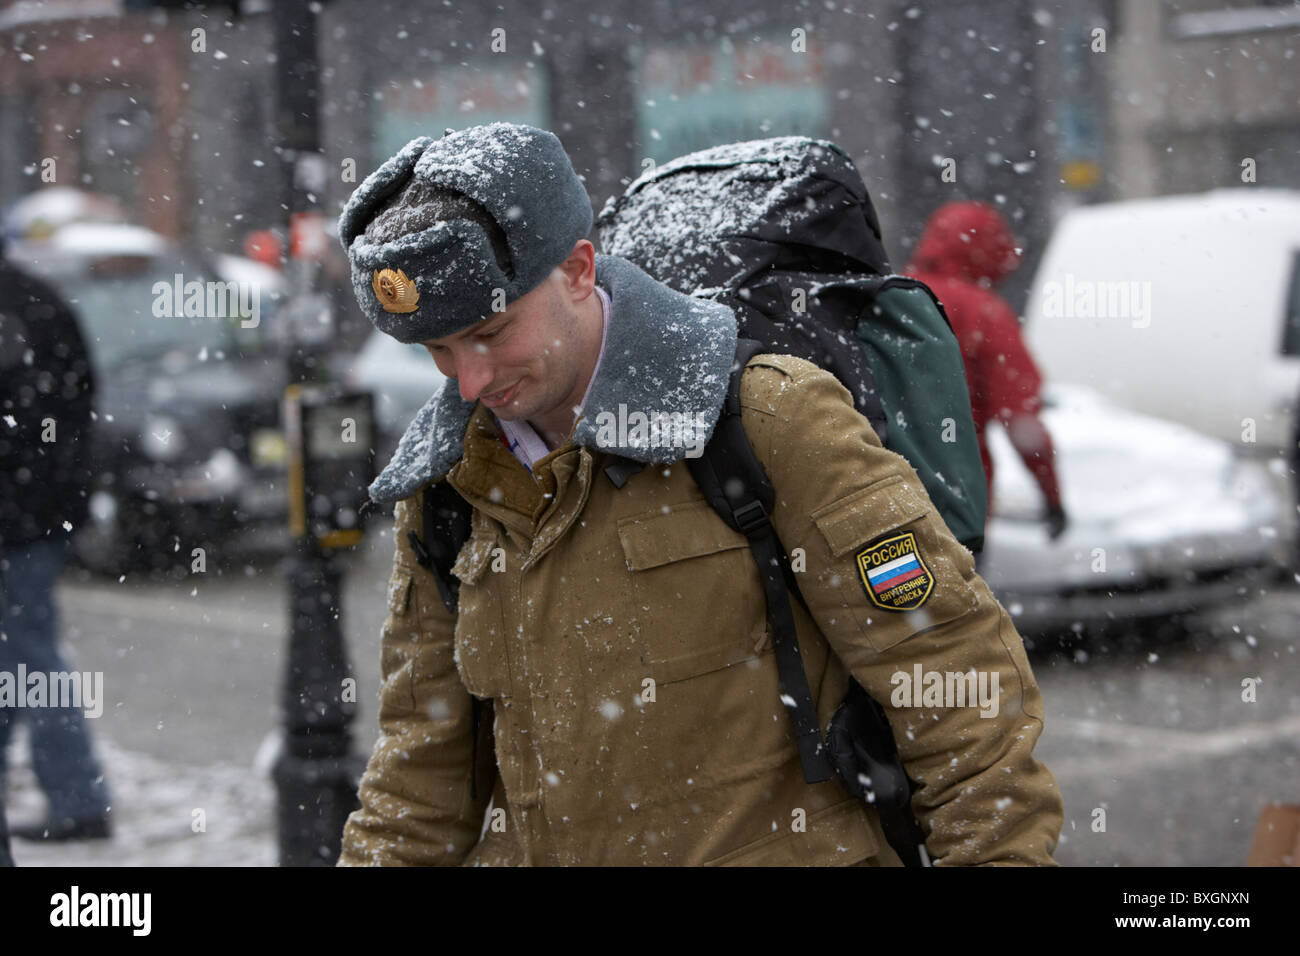 aafa19e6cd9 man wearing russian hat and russian uniform and rucksack on a cold snowy  winters day Belfast Northern Ireland